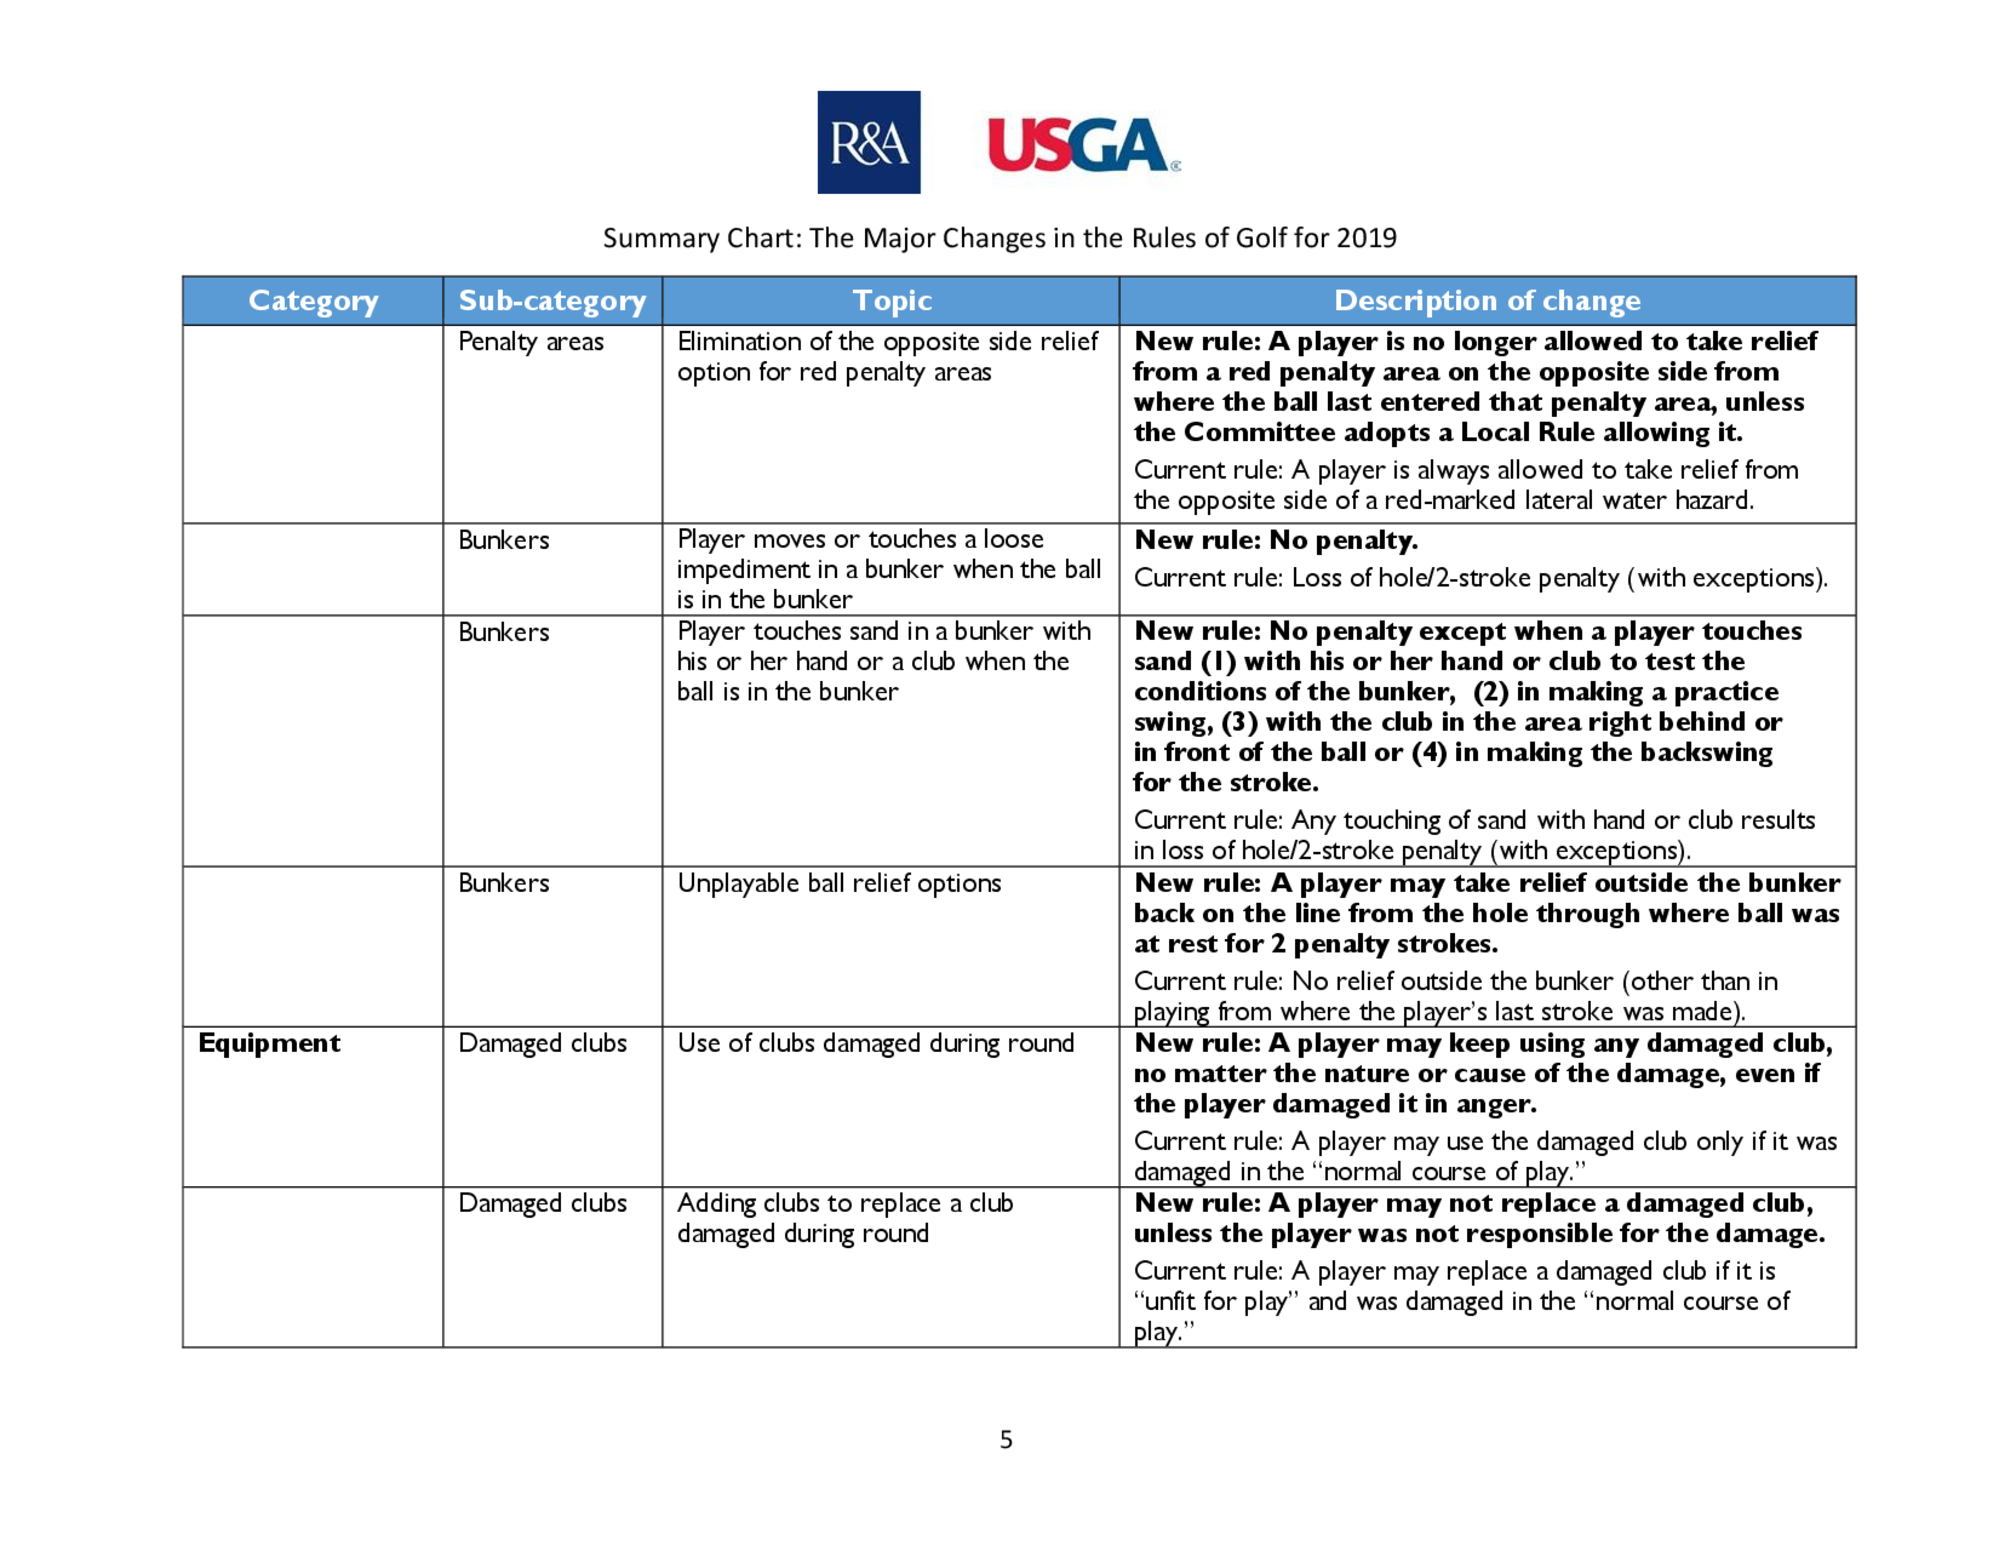 Summary of main changes 2019 rules of golf final  2  5